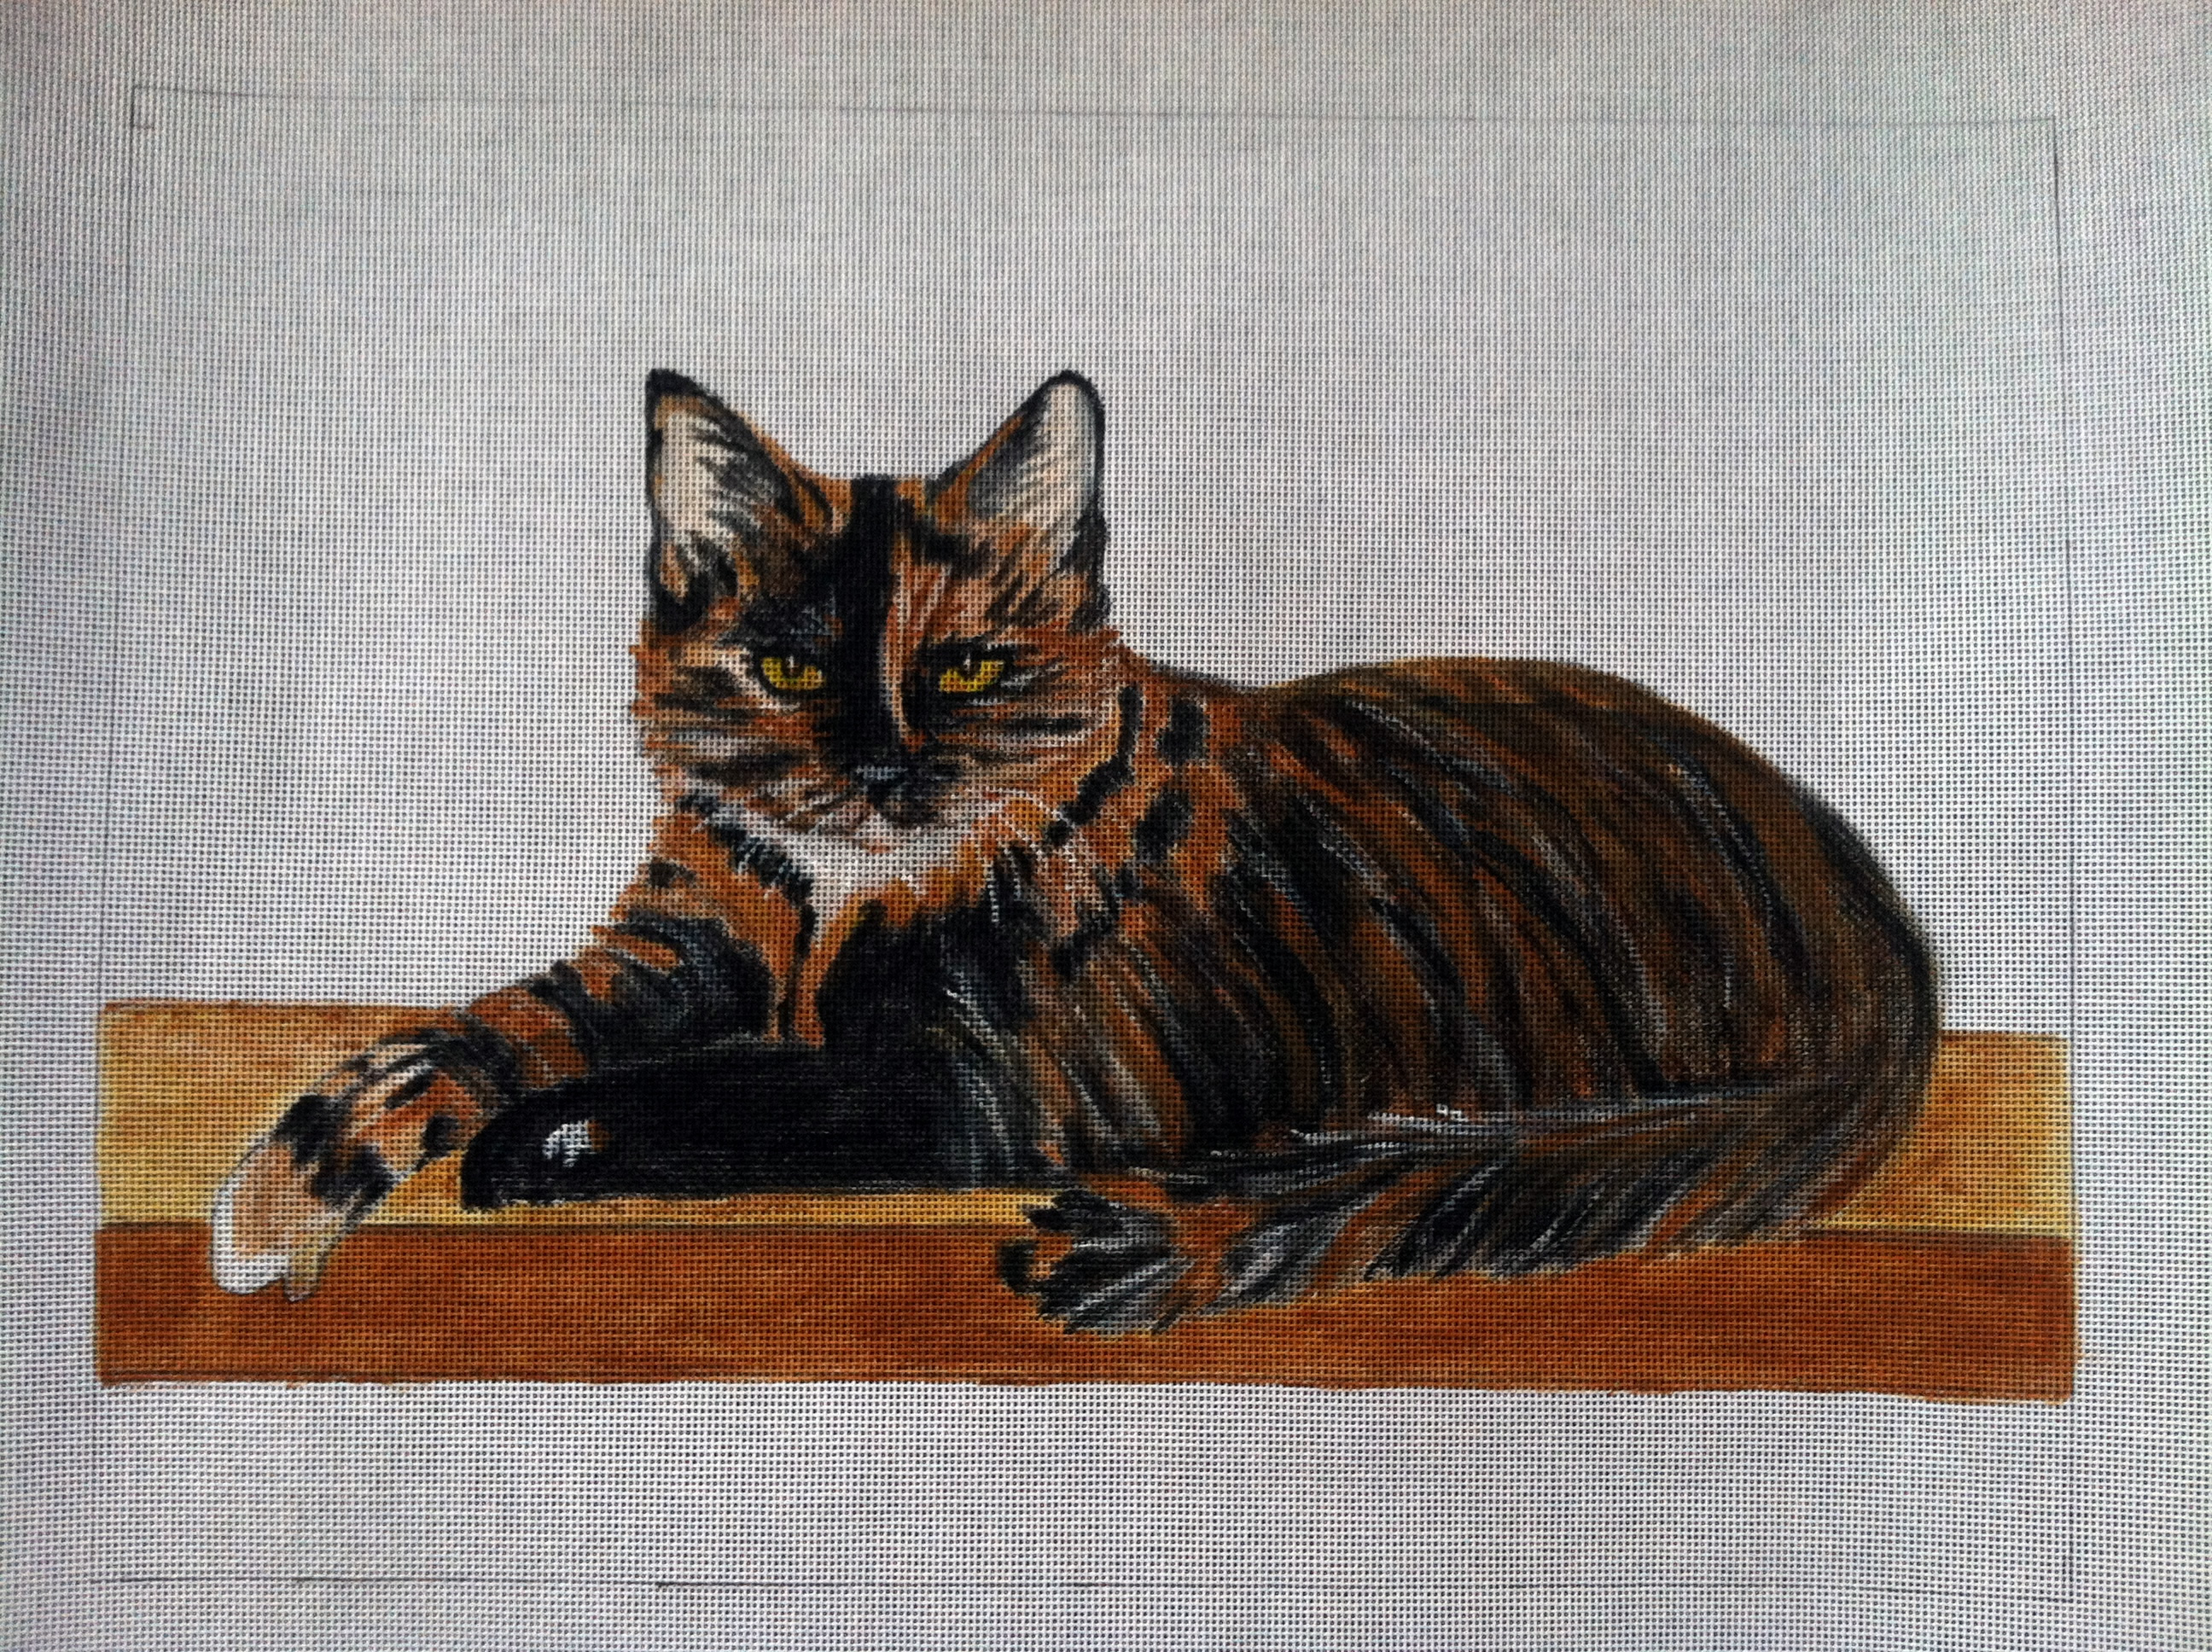 Hand Painted Needlepoint Cat on 18 mesh canvas